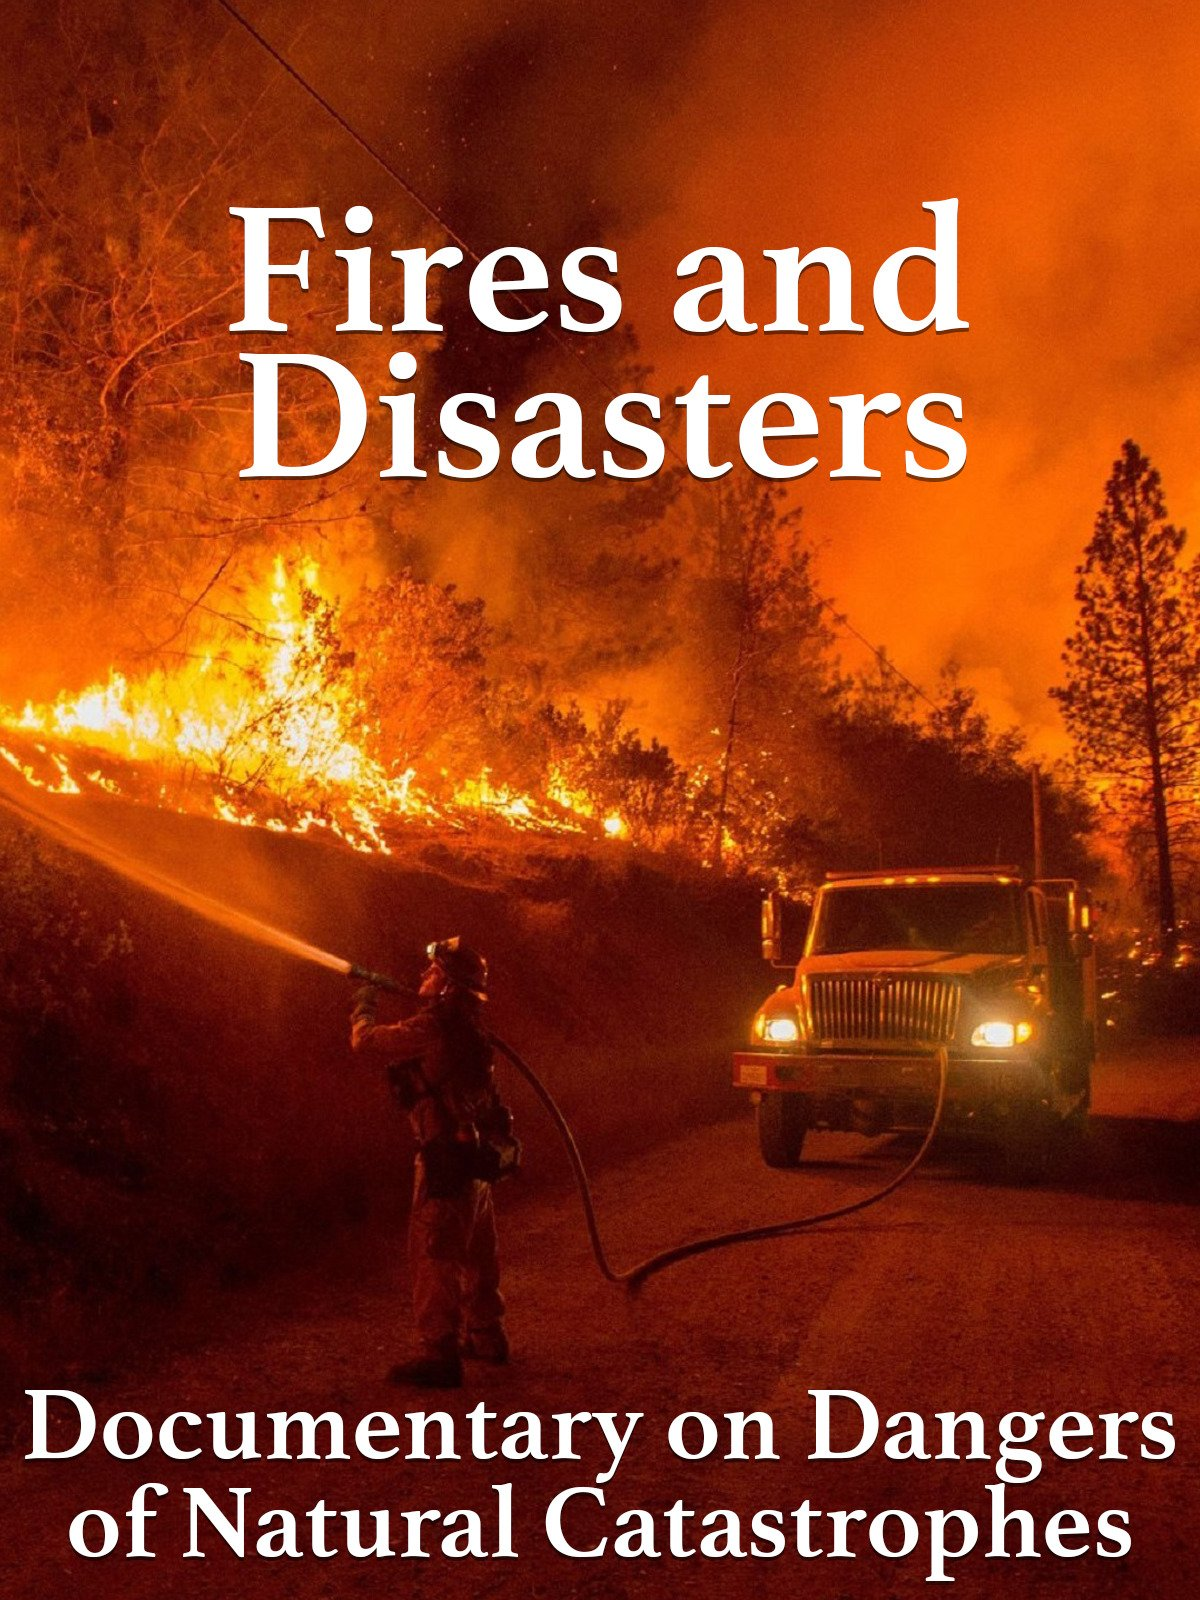 Fires and Disasters Documentary on Dangers of Natural Catastrophes on Amazon Prime Instant Video UK